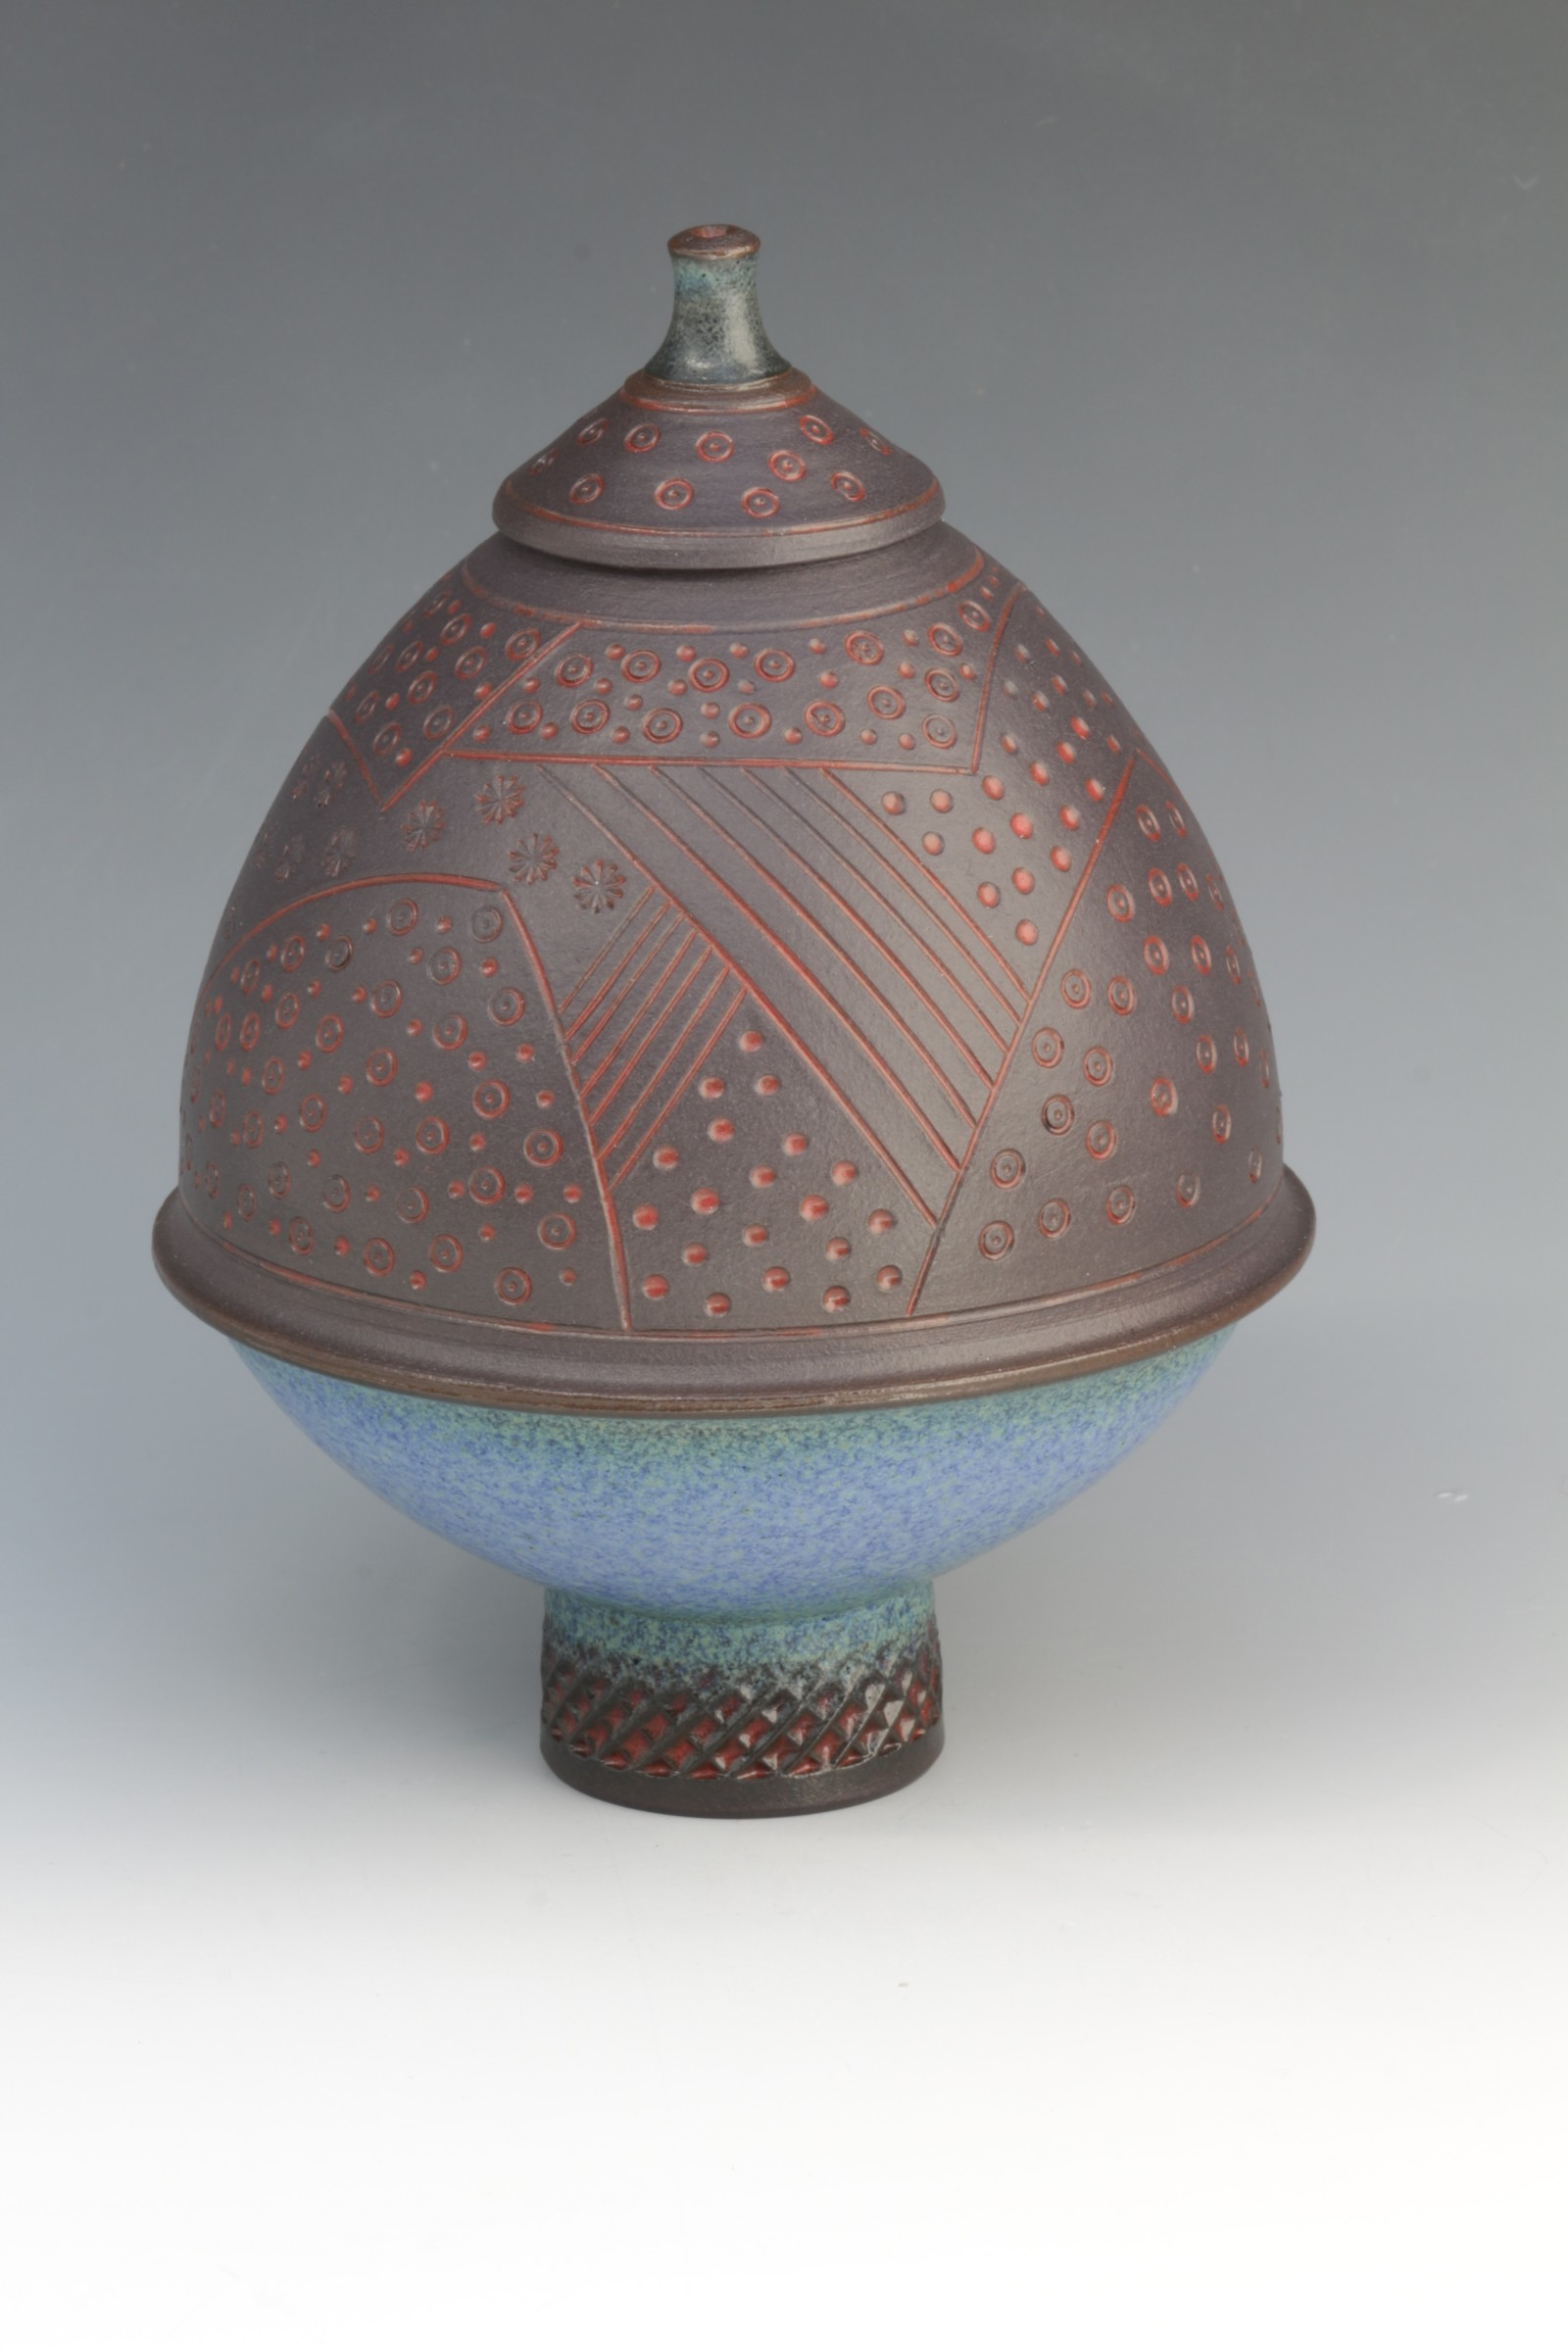 "<span class=""link fancybox-details-link""><a href=""/artists/61-geoffrey-swindell/works/6416-geoffrey-swindell-lidded-pot/"">View Detail Page</a></span><div class=""artist""><strong>Geoffrey Swindell</strong></div> <div class=""title""><em>Lidded Pot</em></div> <div class=""copyright_line"">Ownart £20 x 10 Months 0% APR</div>"